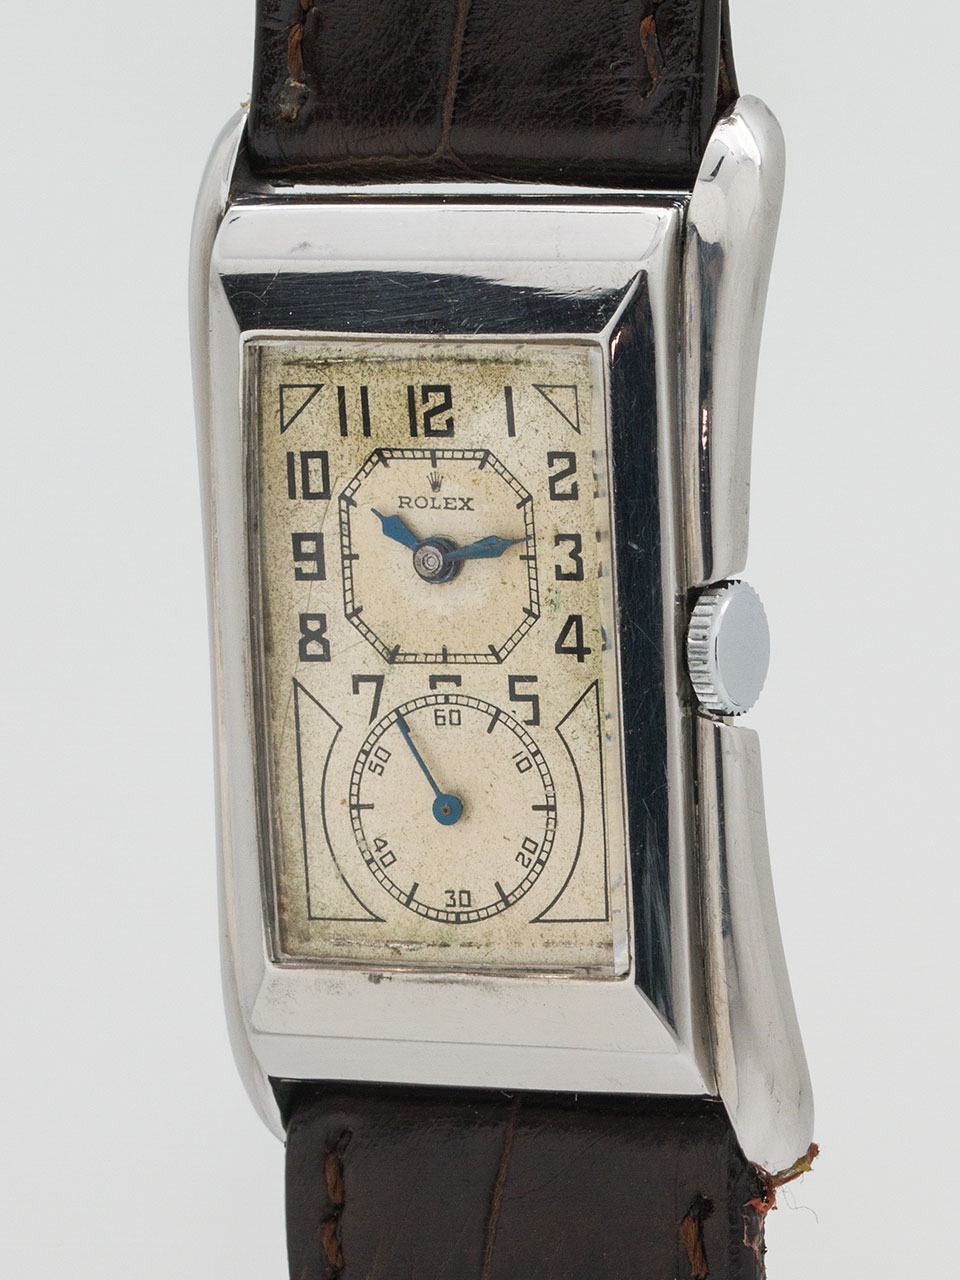 Rolex Prince Branchard ref 1490 Stainless Steel circa 1930's